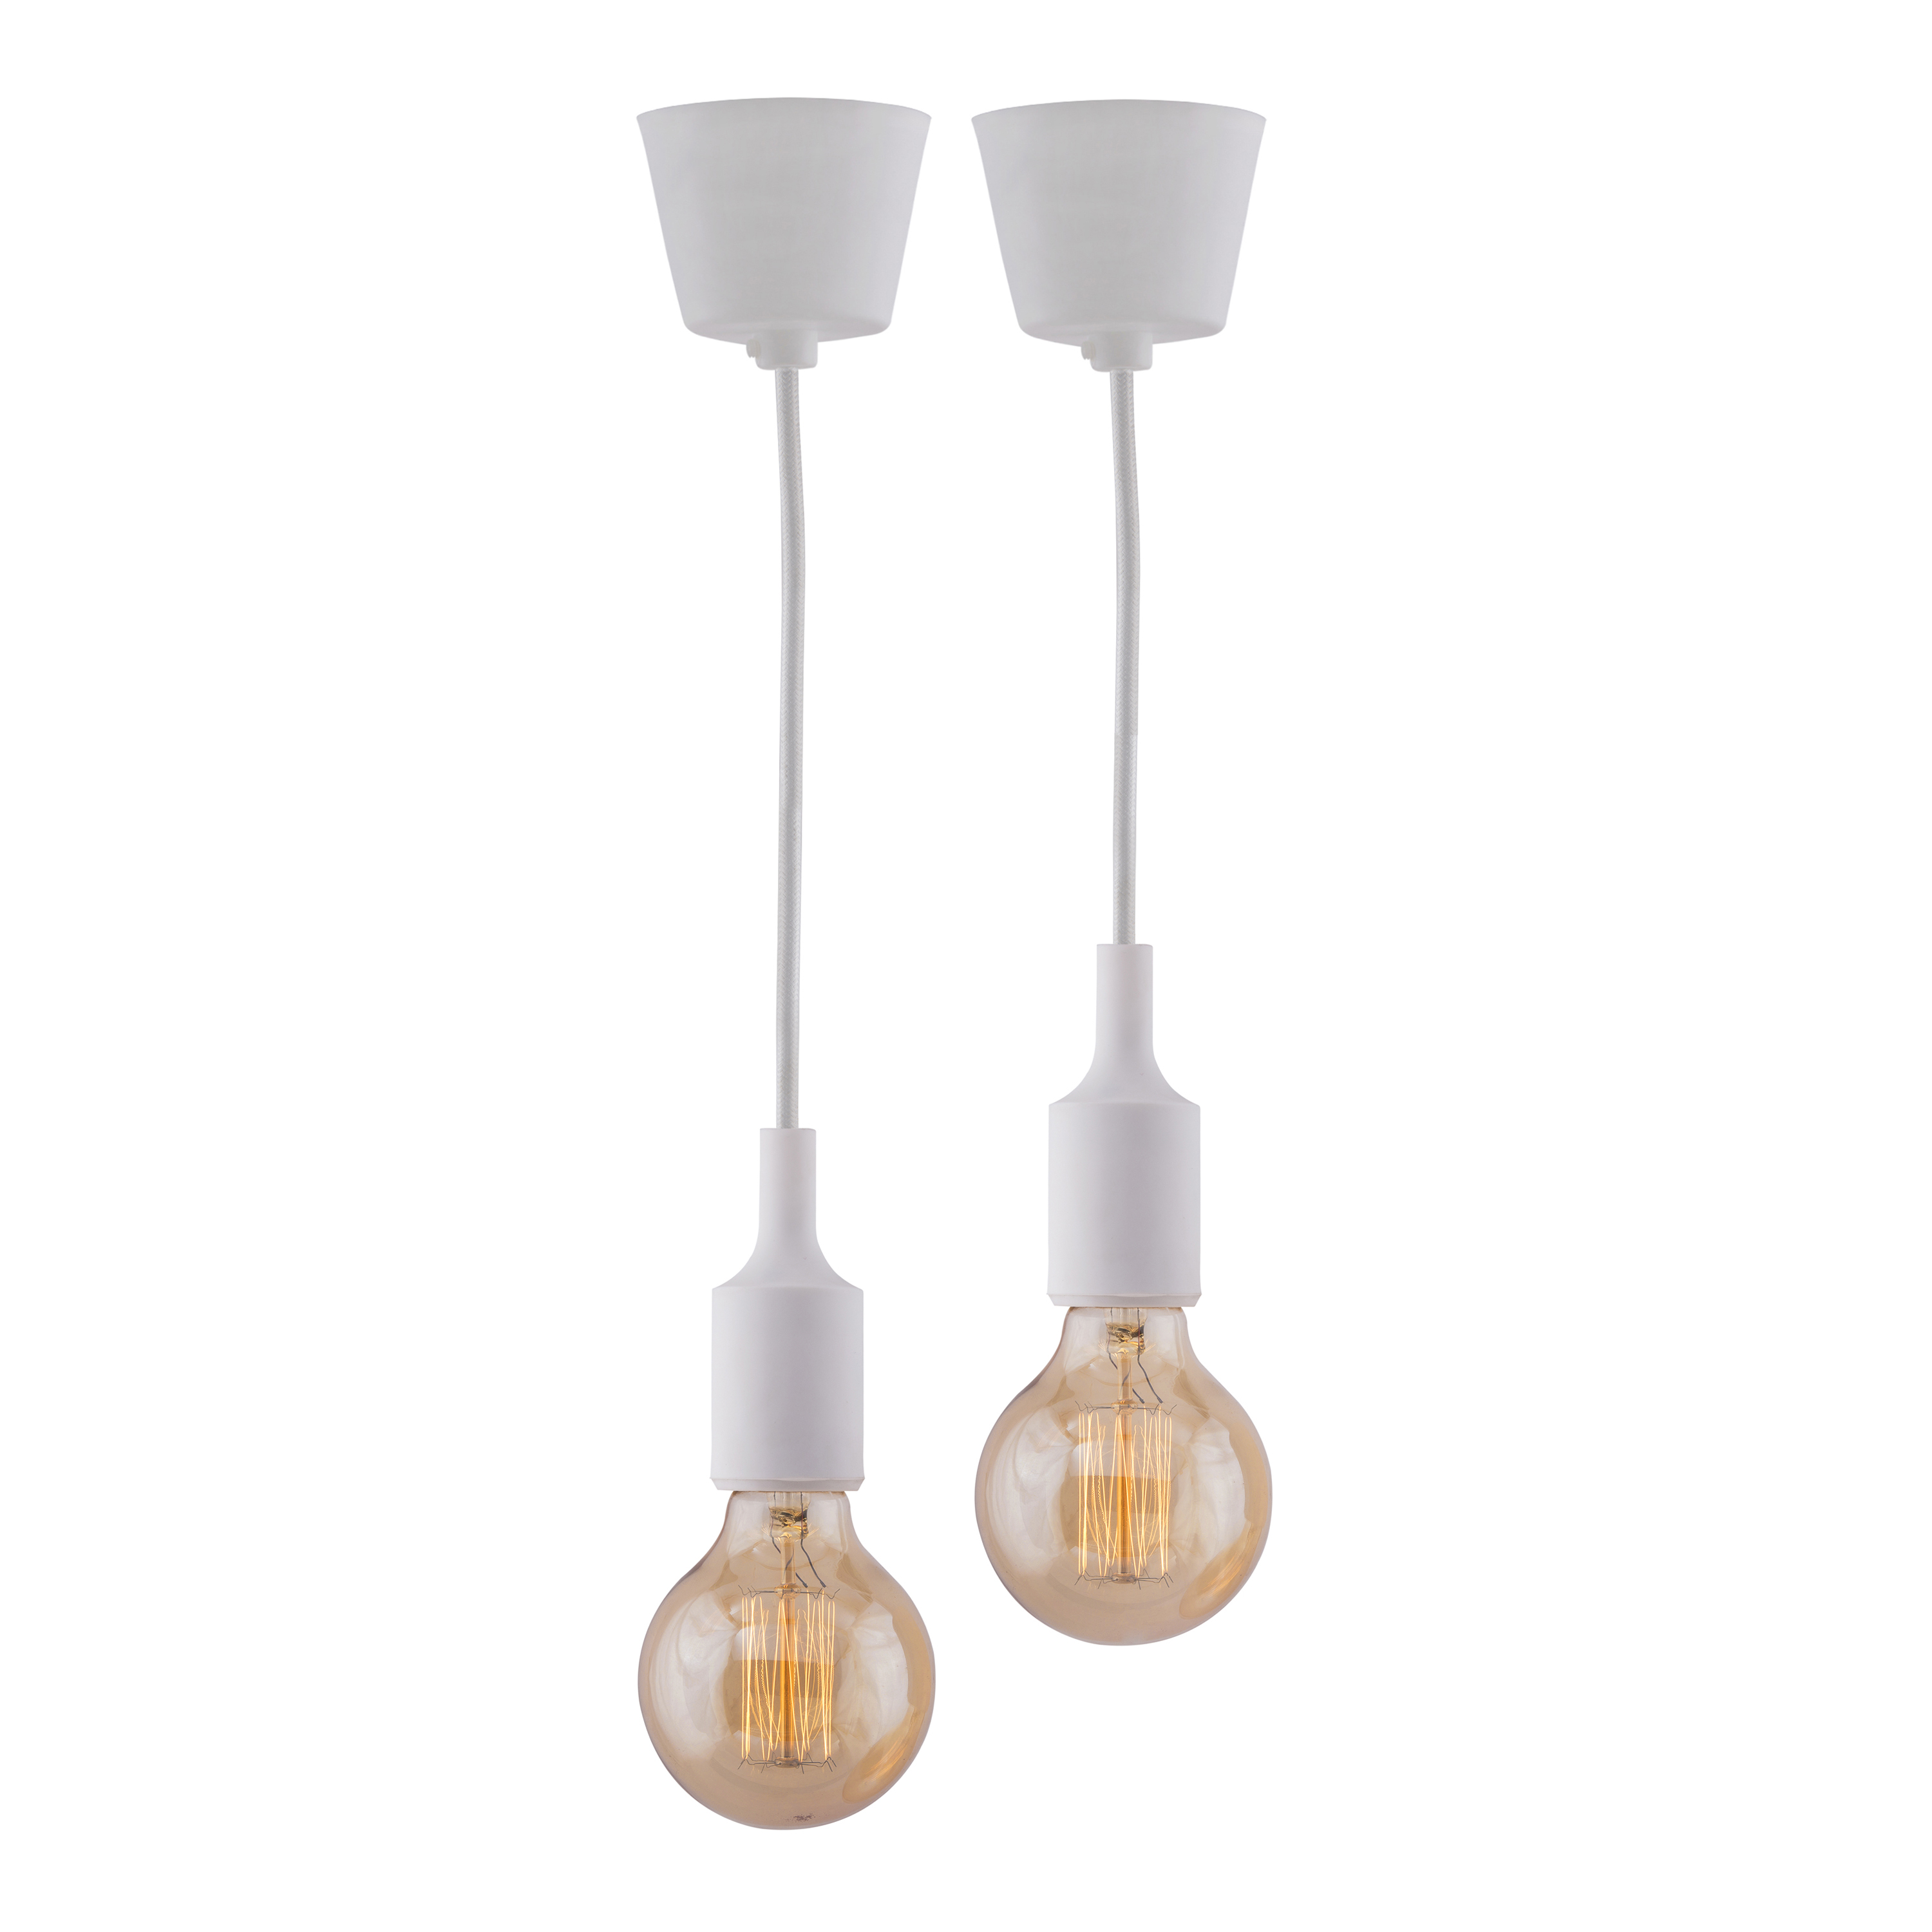 2pcs E27 Socket Chandelier Lamp Light Fixture, White Hanging Silicone Holder Adjustable Modern Pendant Ceiling Lamp